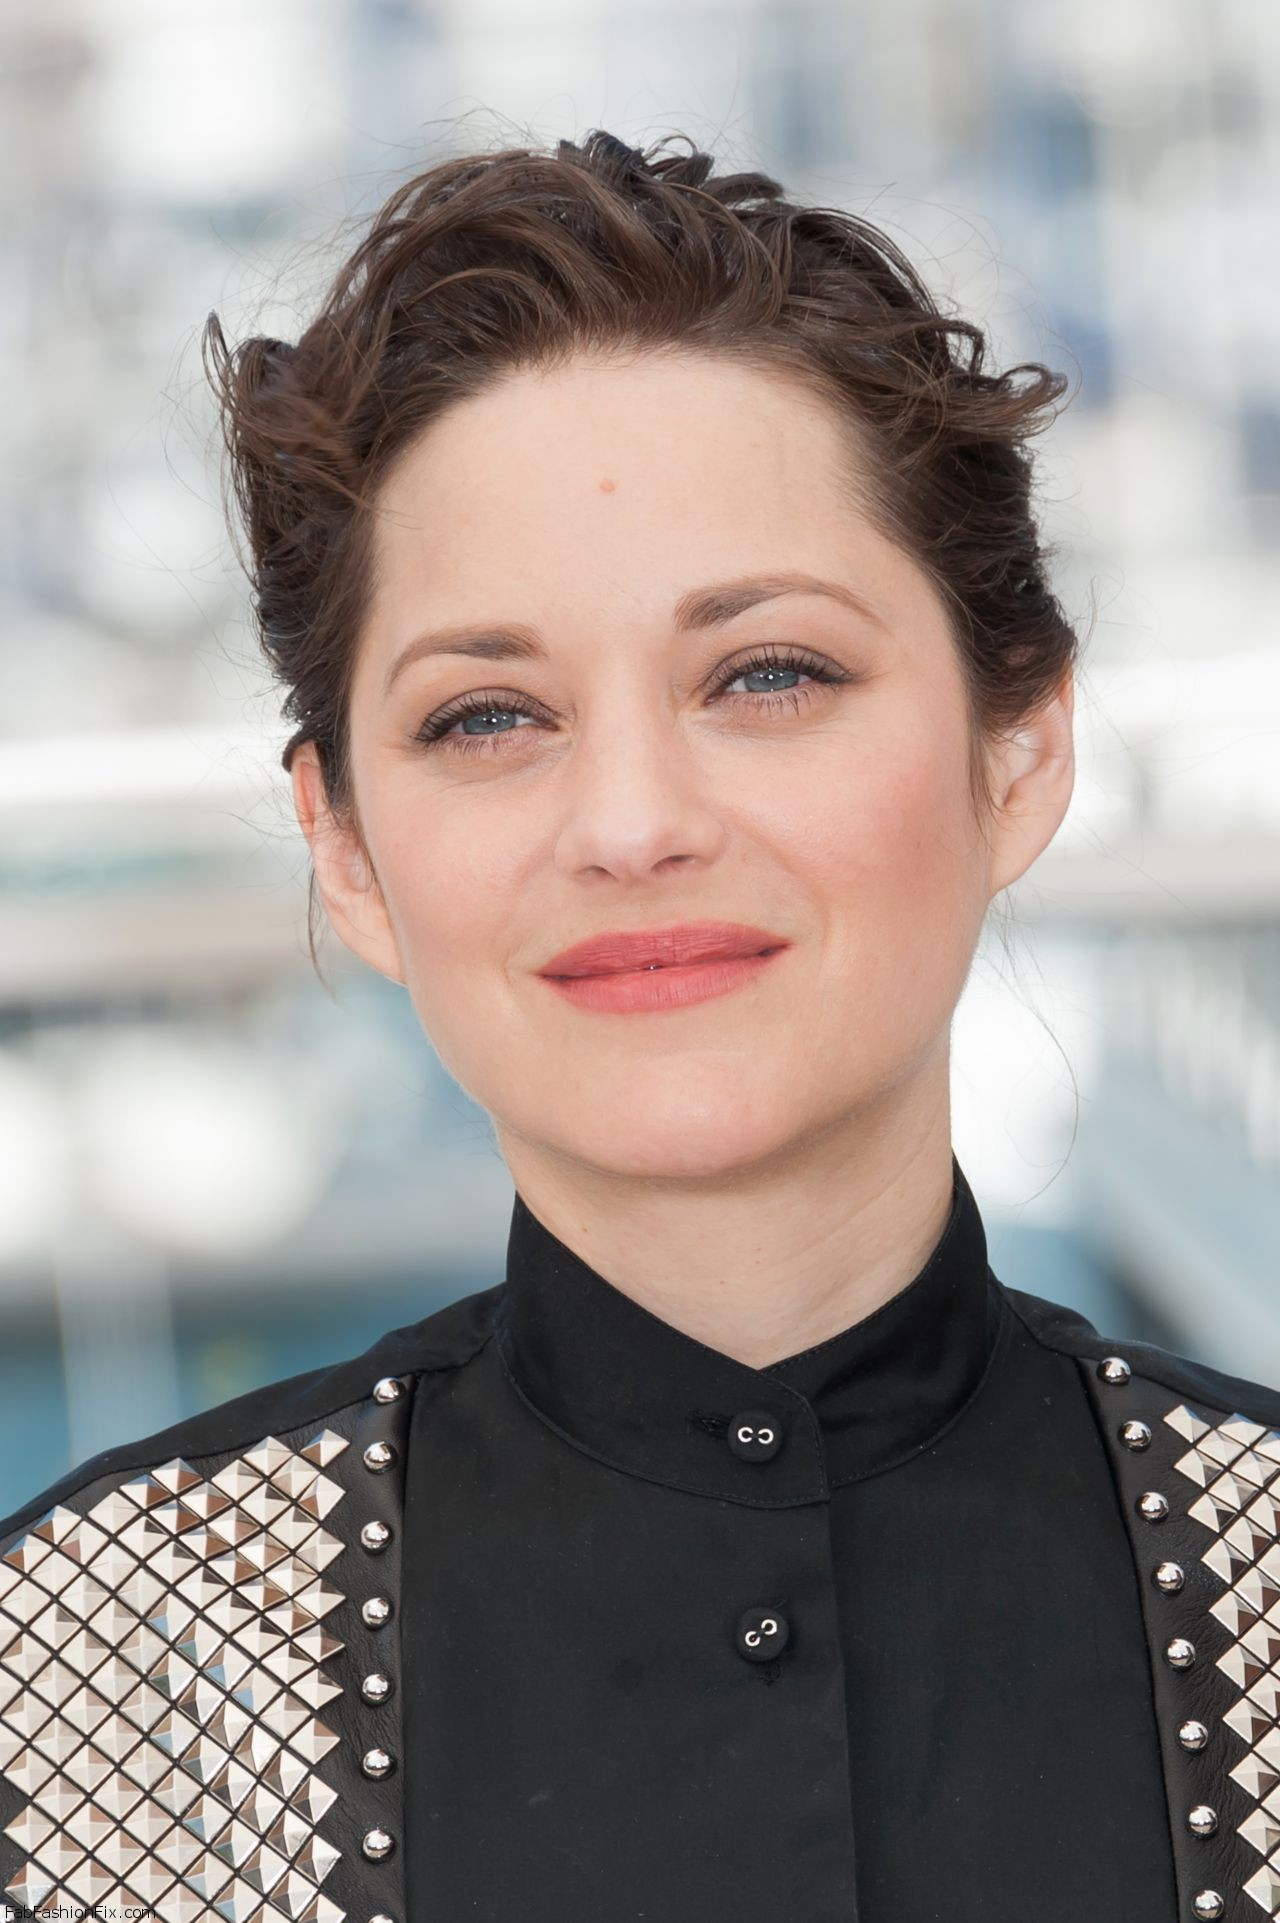 marion-cotillard-it-s-only-the-end-of-the-world-photocall-69th-cannes-film-festival-5-19-2016-1